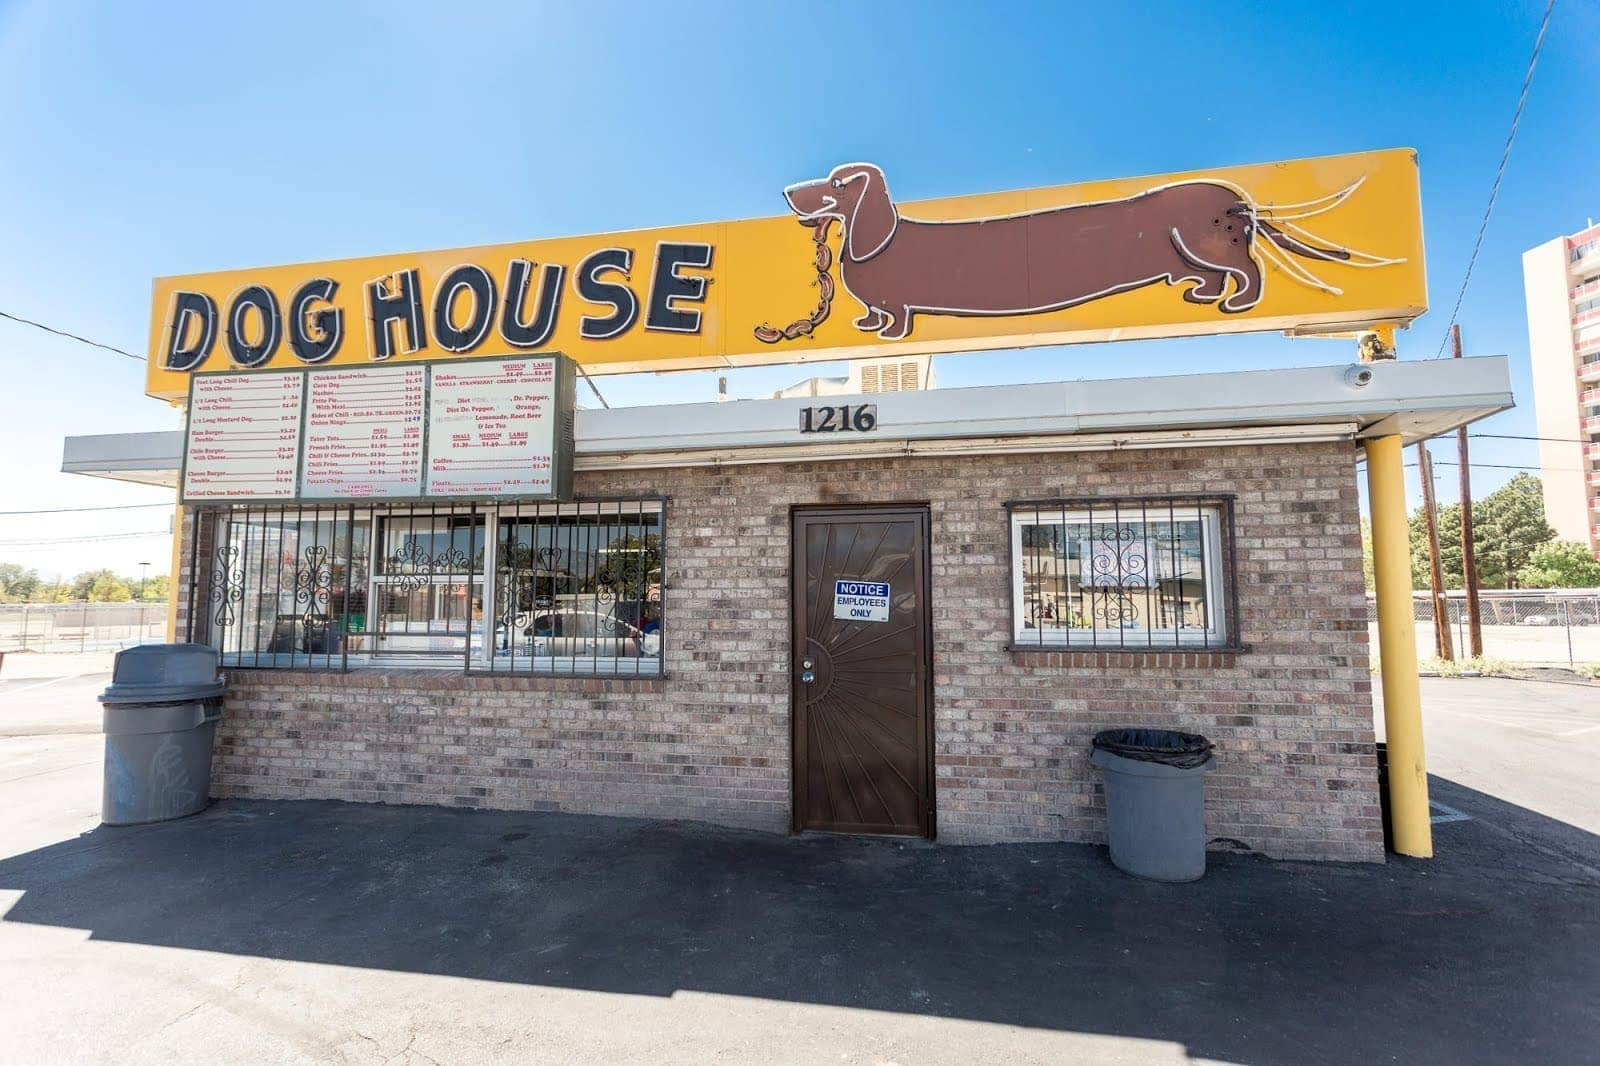 Route 66 Dog House Diner Albuquerque_by_Laurence Norah